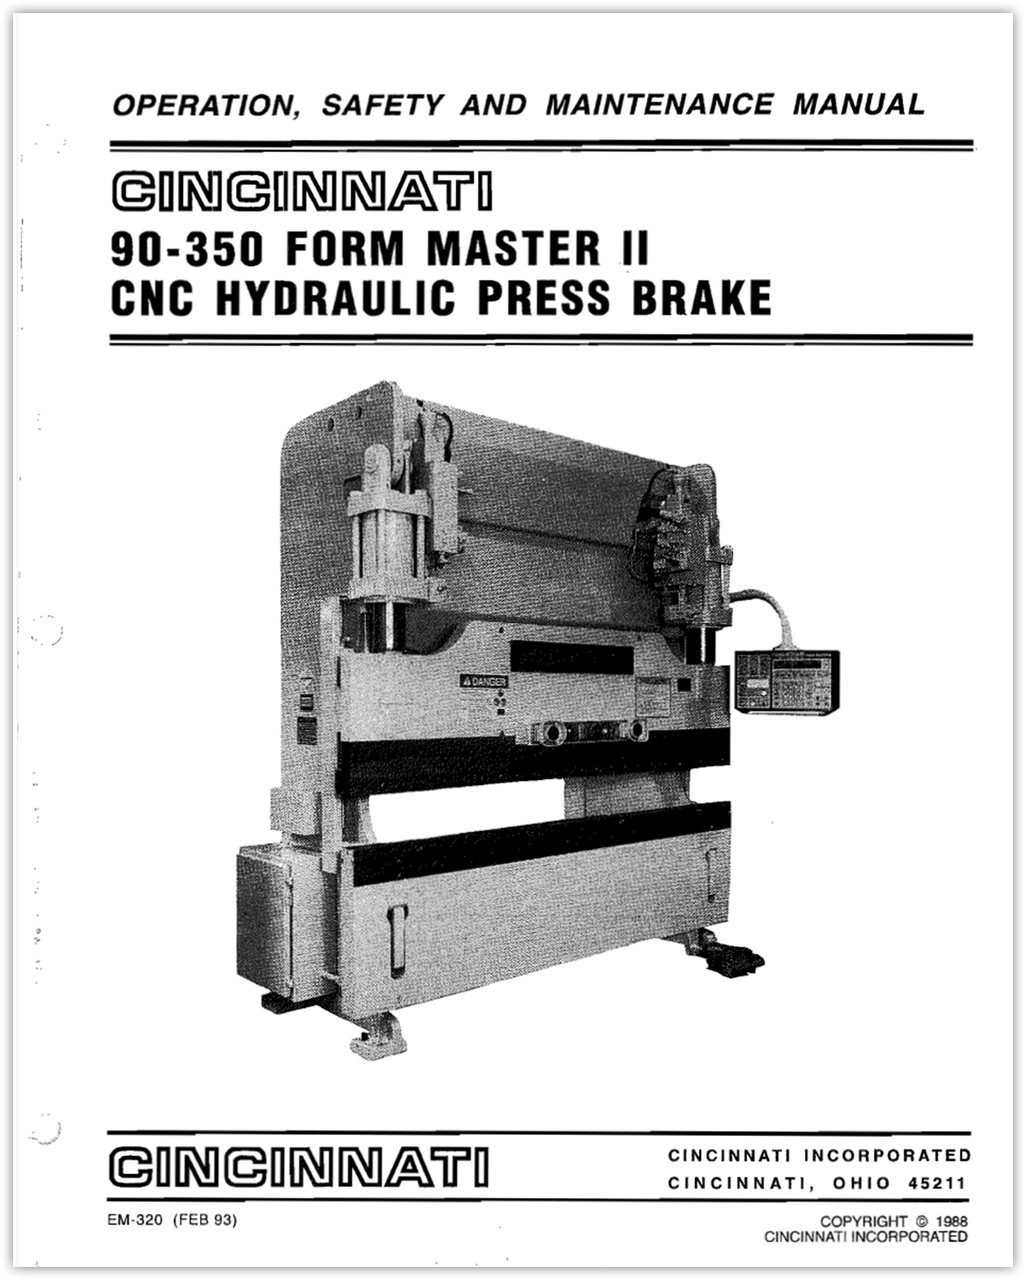 EM-320 (R-02-93) 90-350 FMII Hydraulic Press Brake Operation, Safety and Maintenance Manual